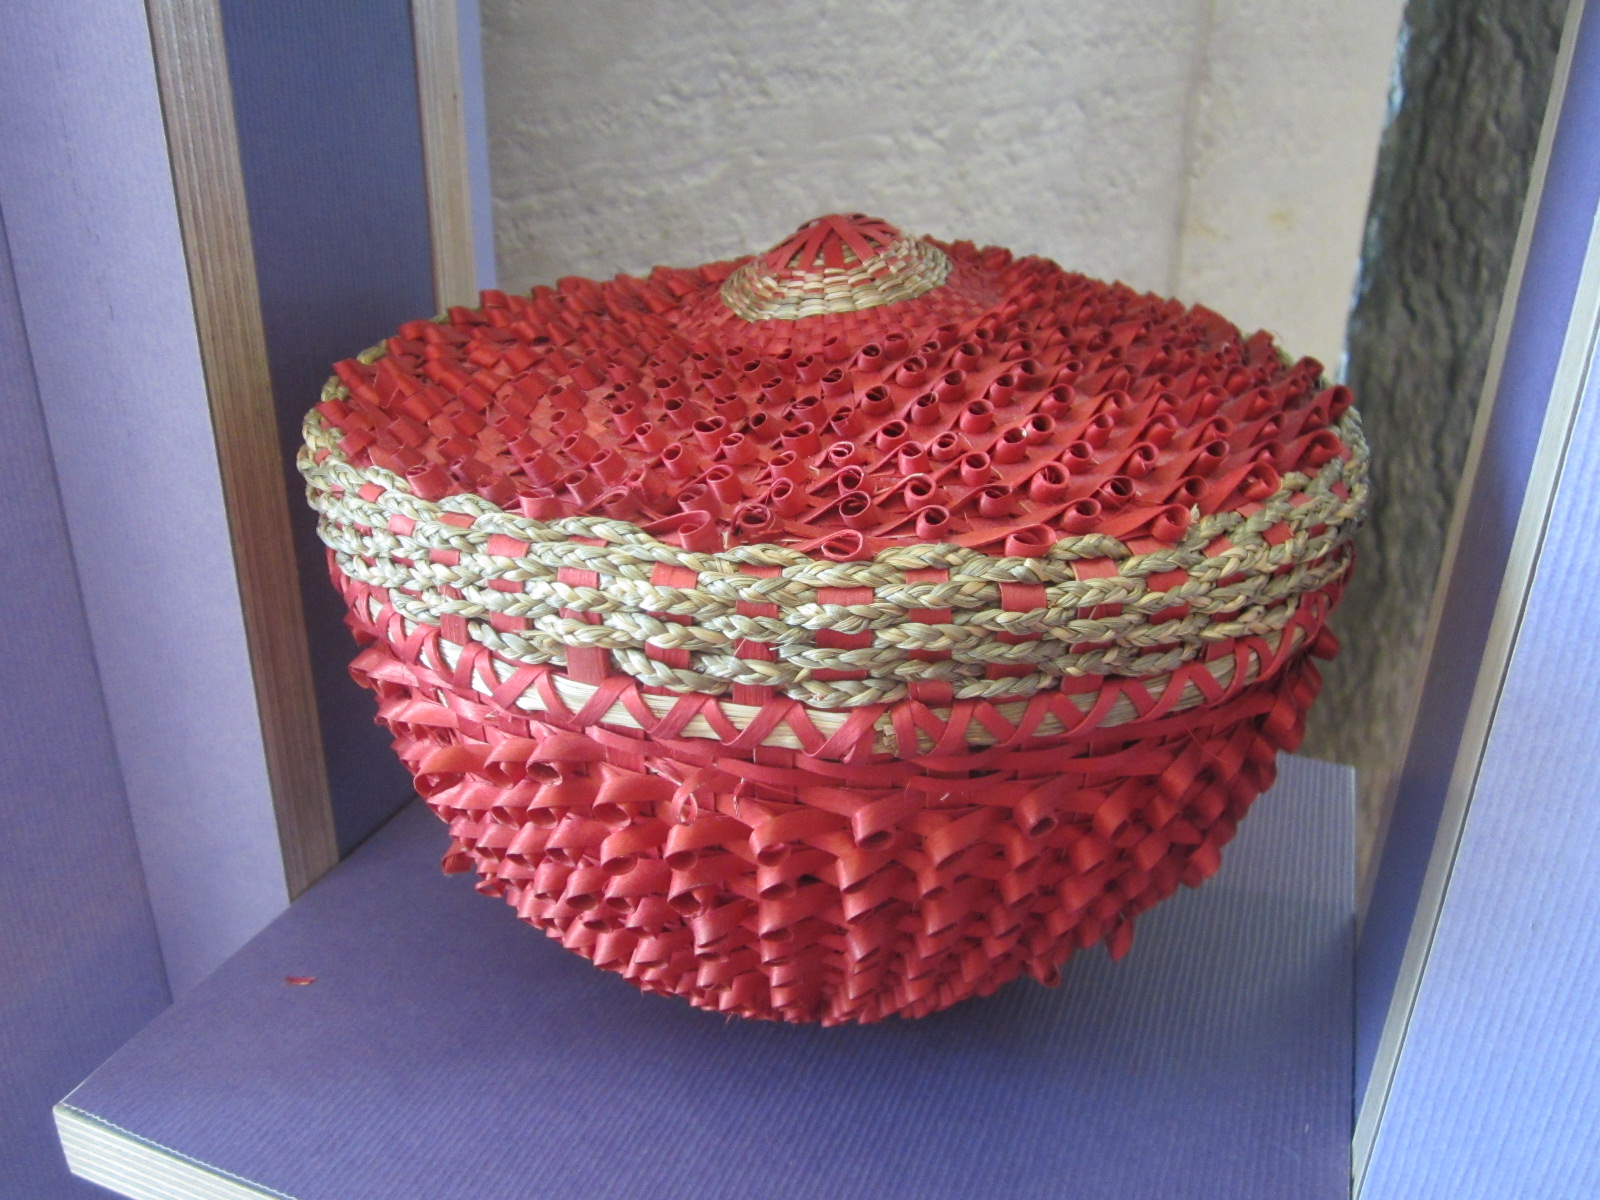 Incredible red basket - National Museum of the American Indian